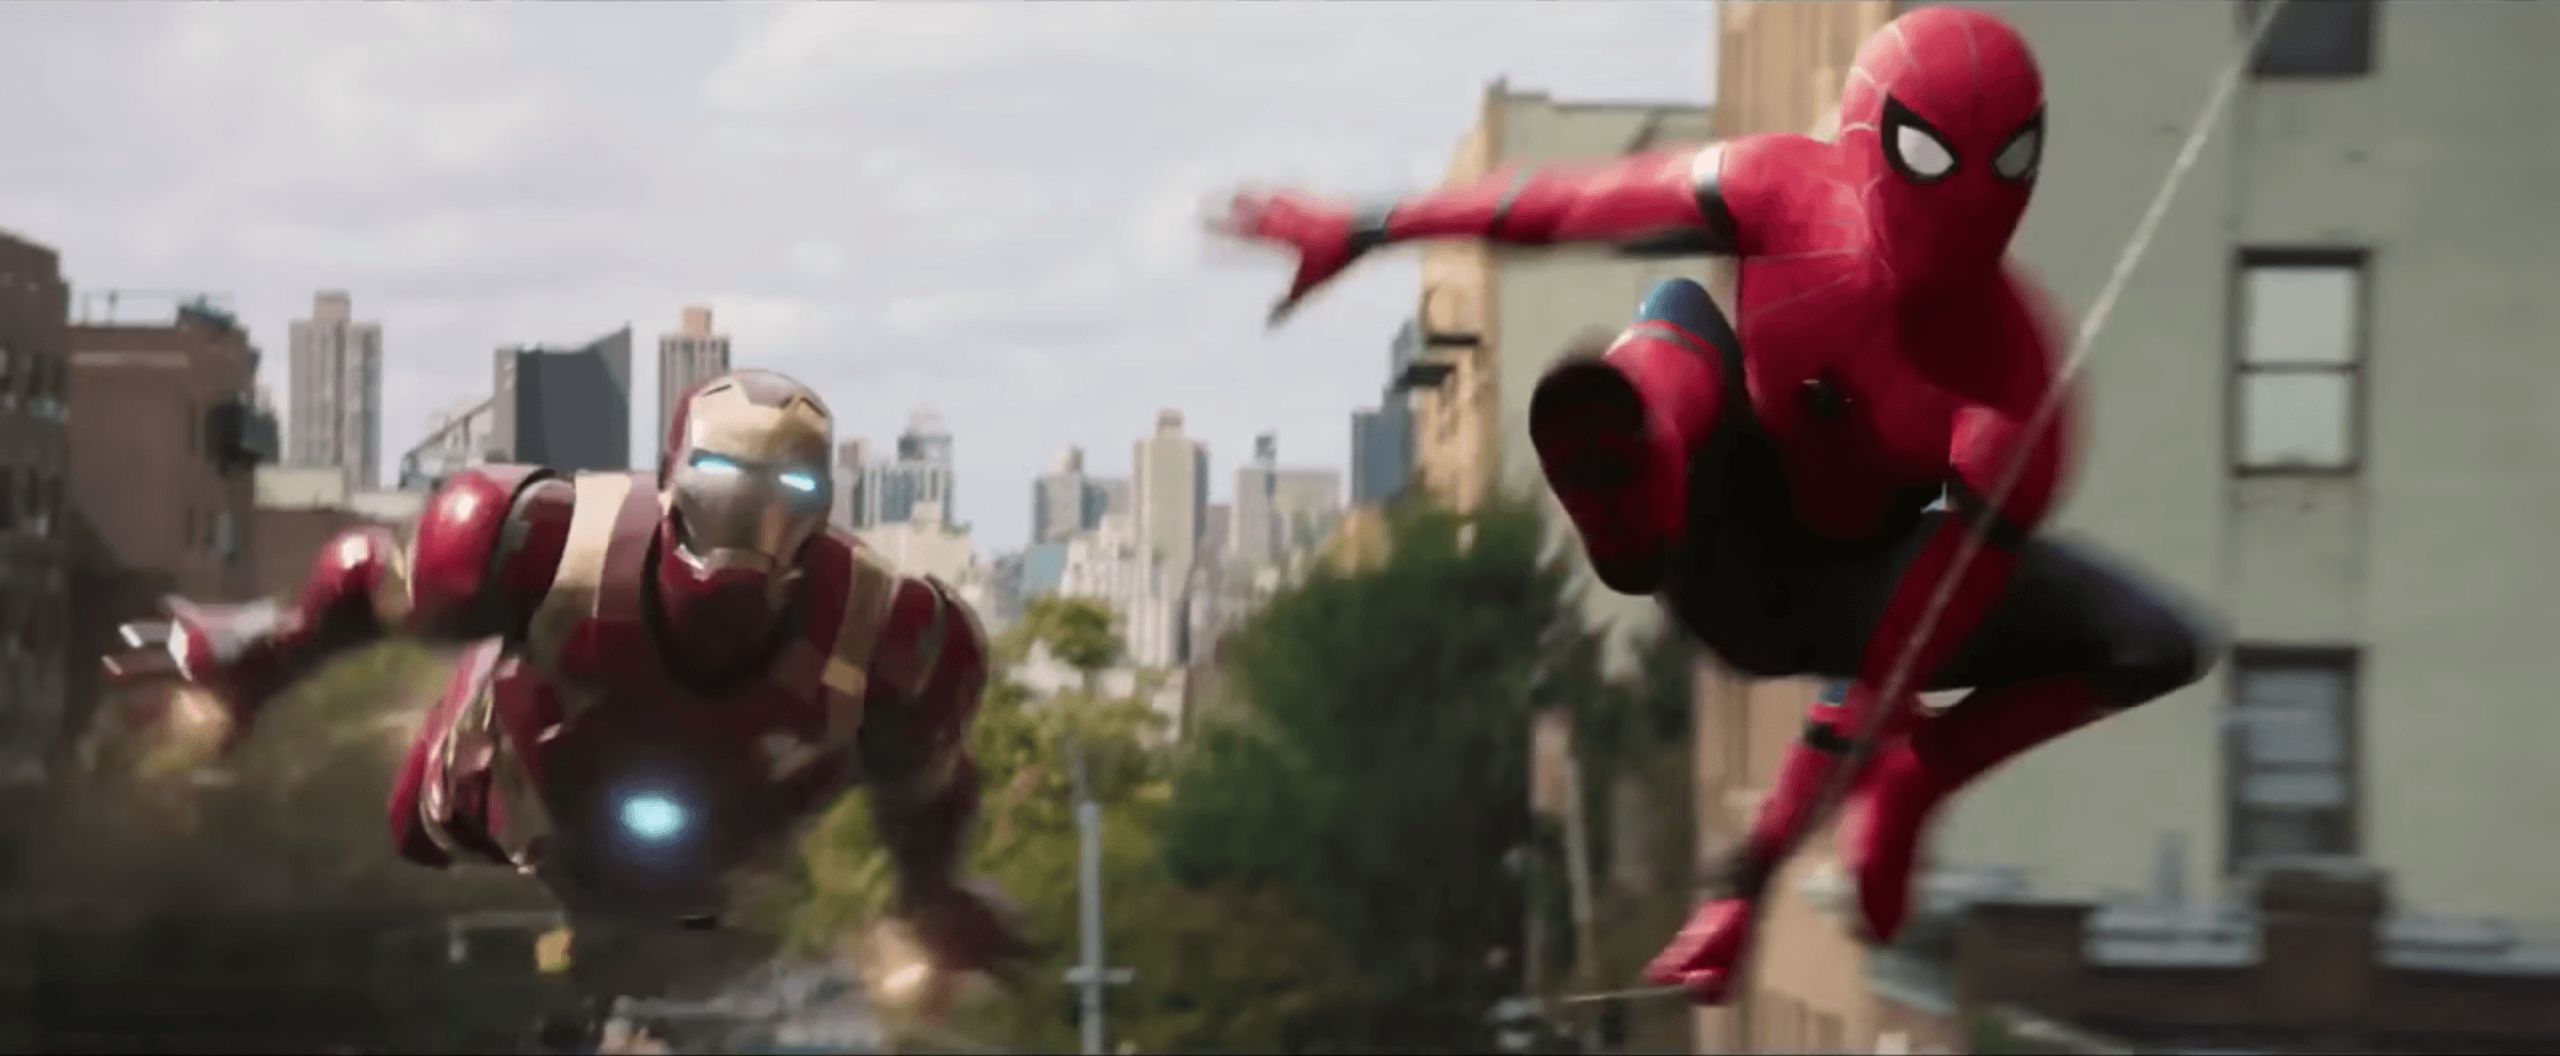 spider-man-homecoming-iron-man